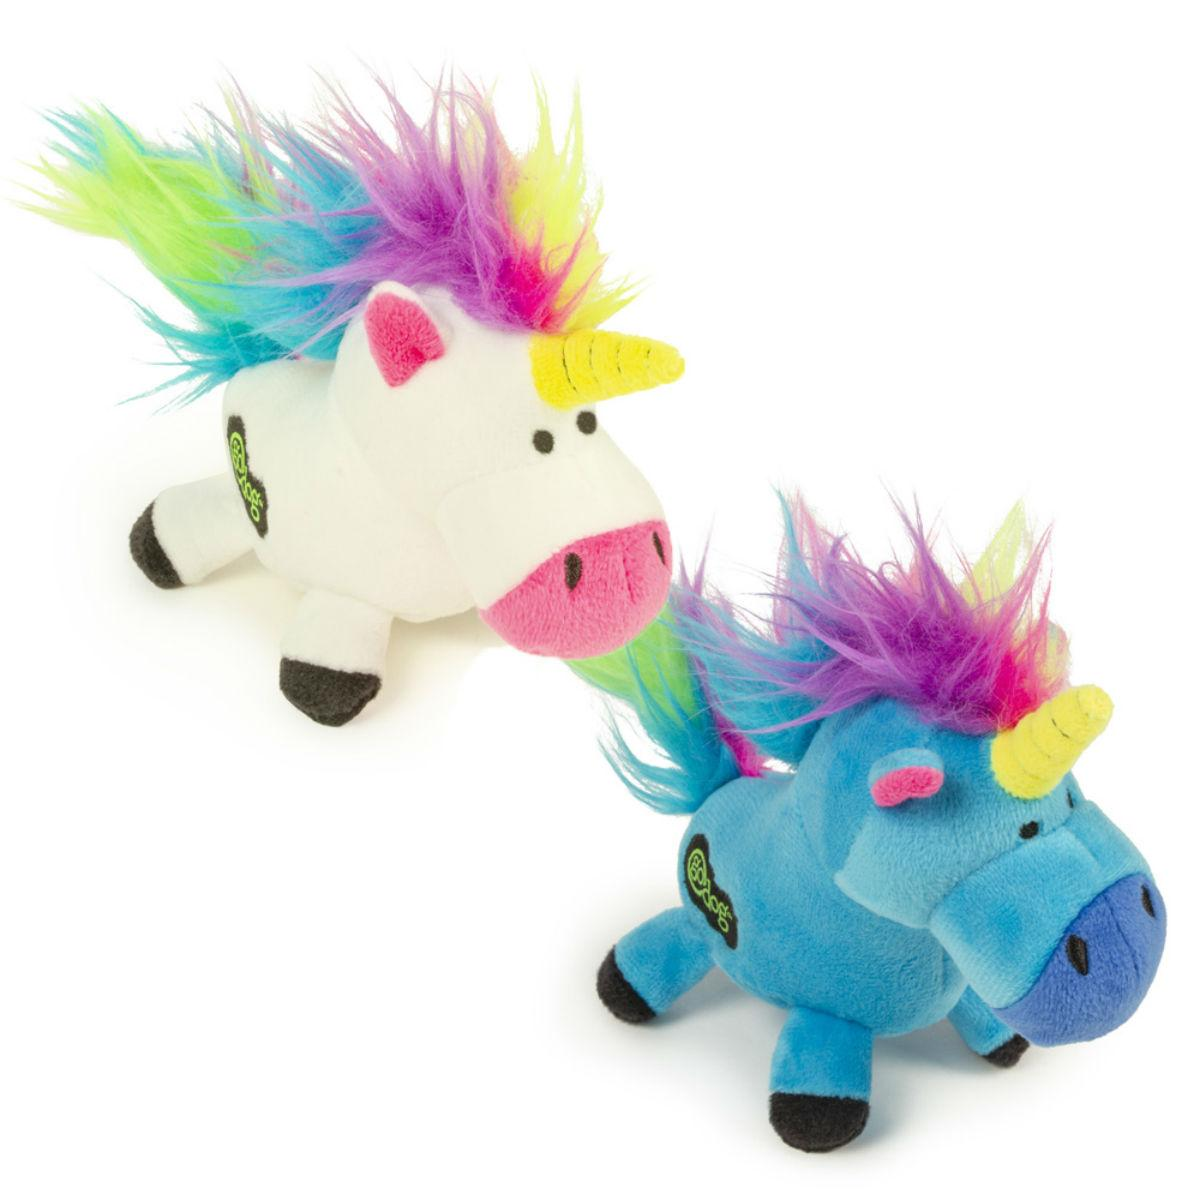 goDog Just for Me Unicorn Plush Dog Toy